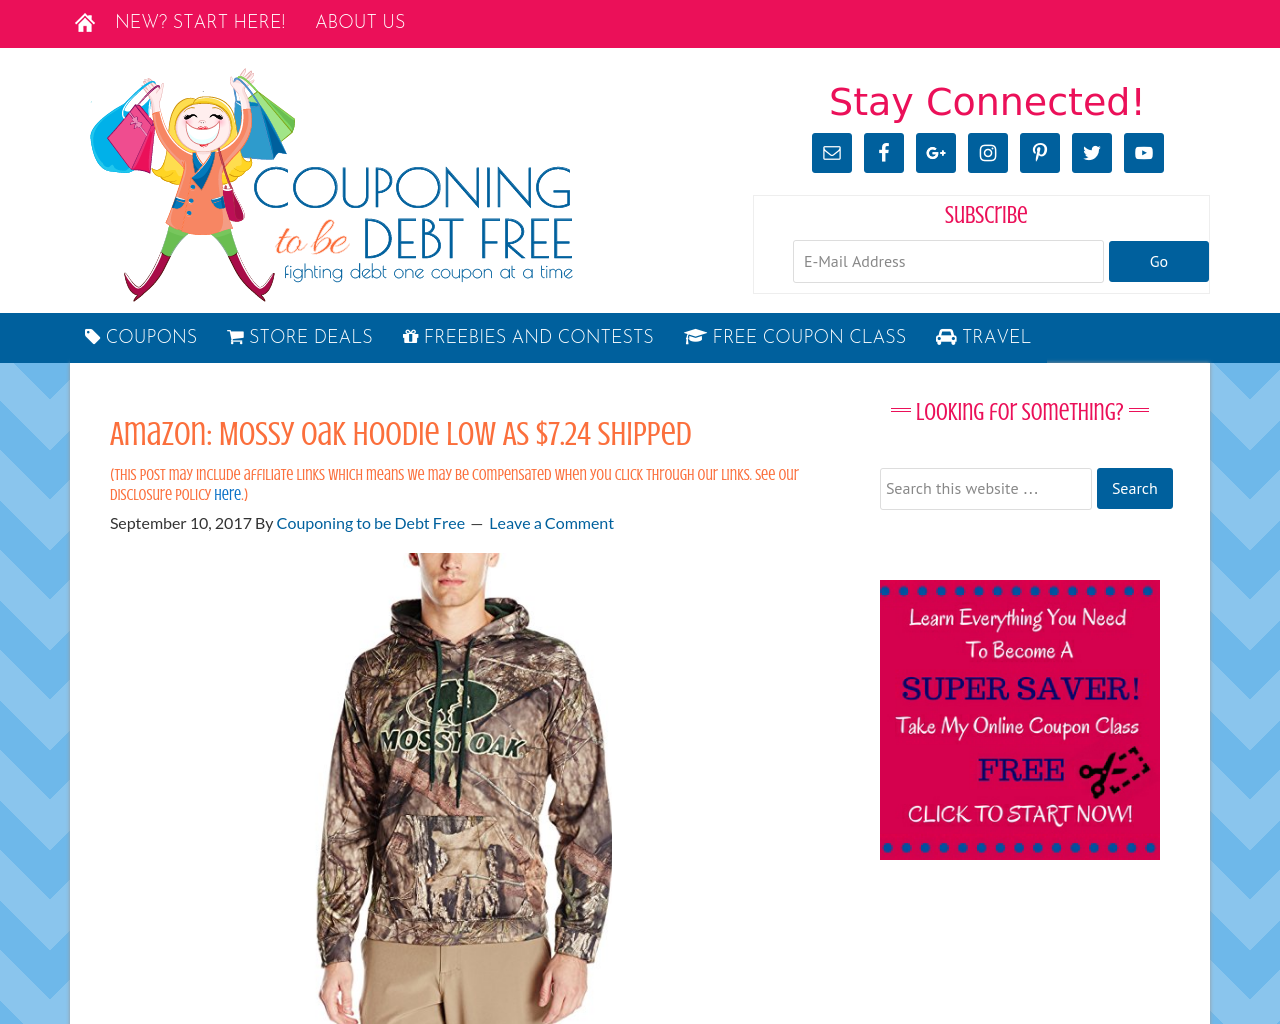 Couponing-To-Be-Debt-Free-Advertising-Reviews-Pricing